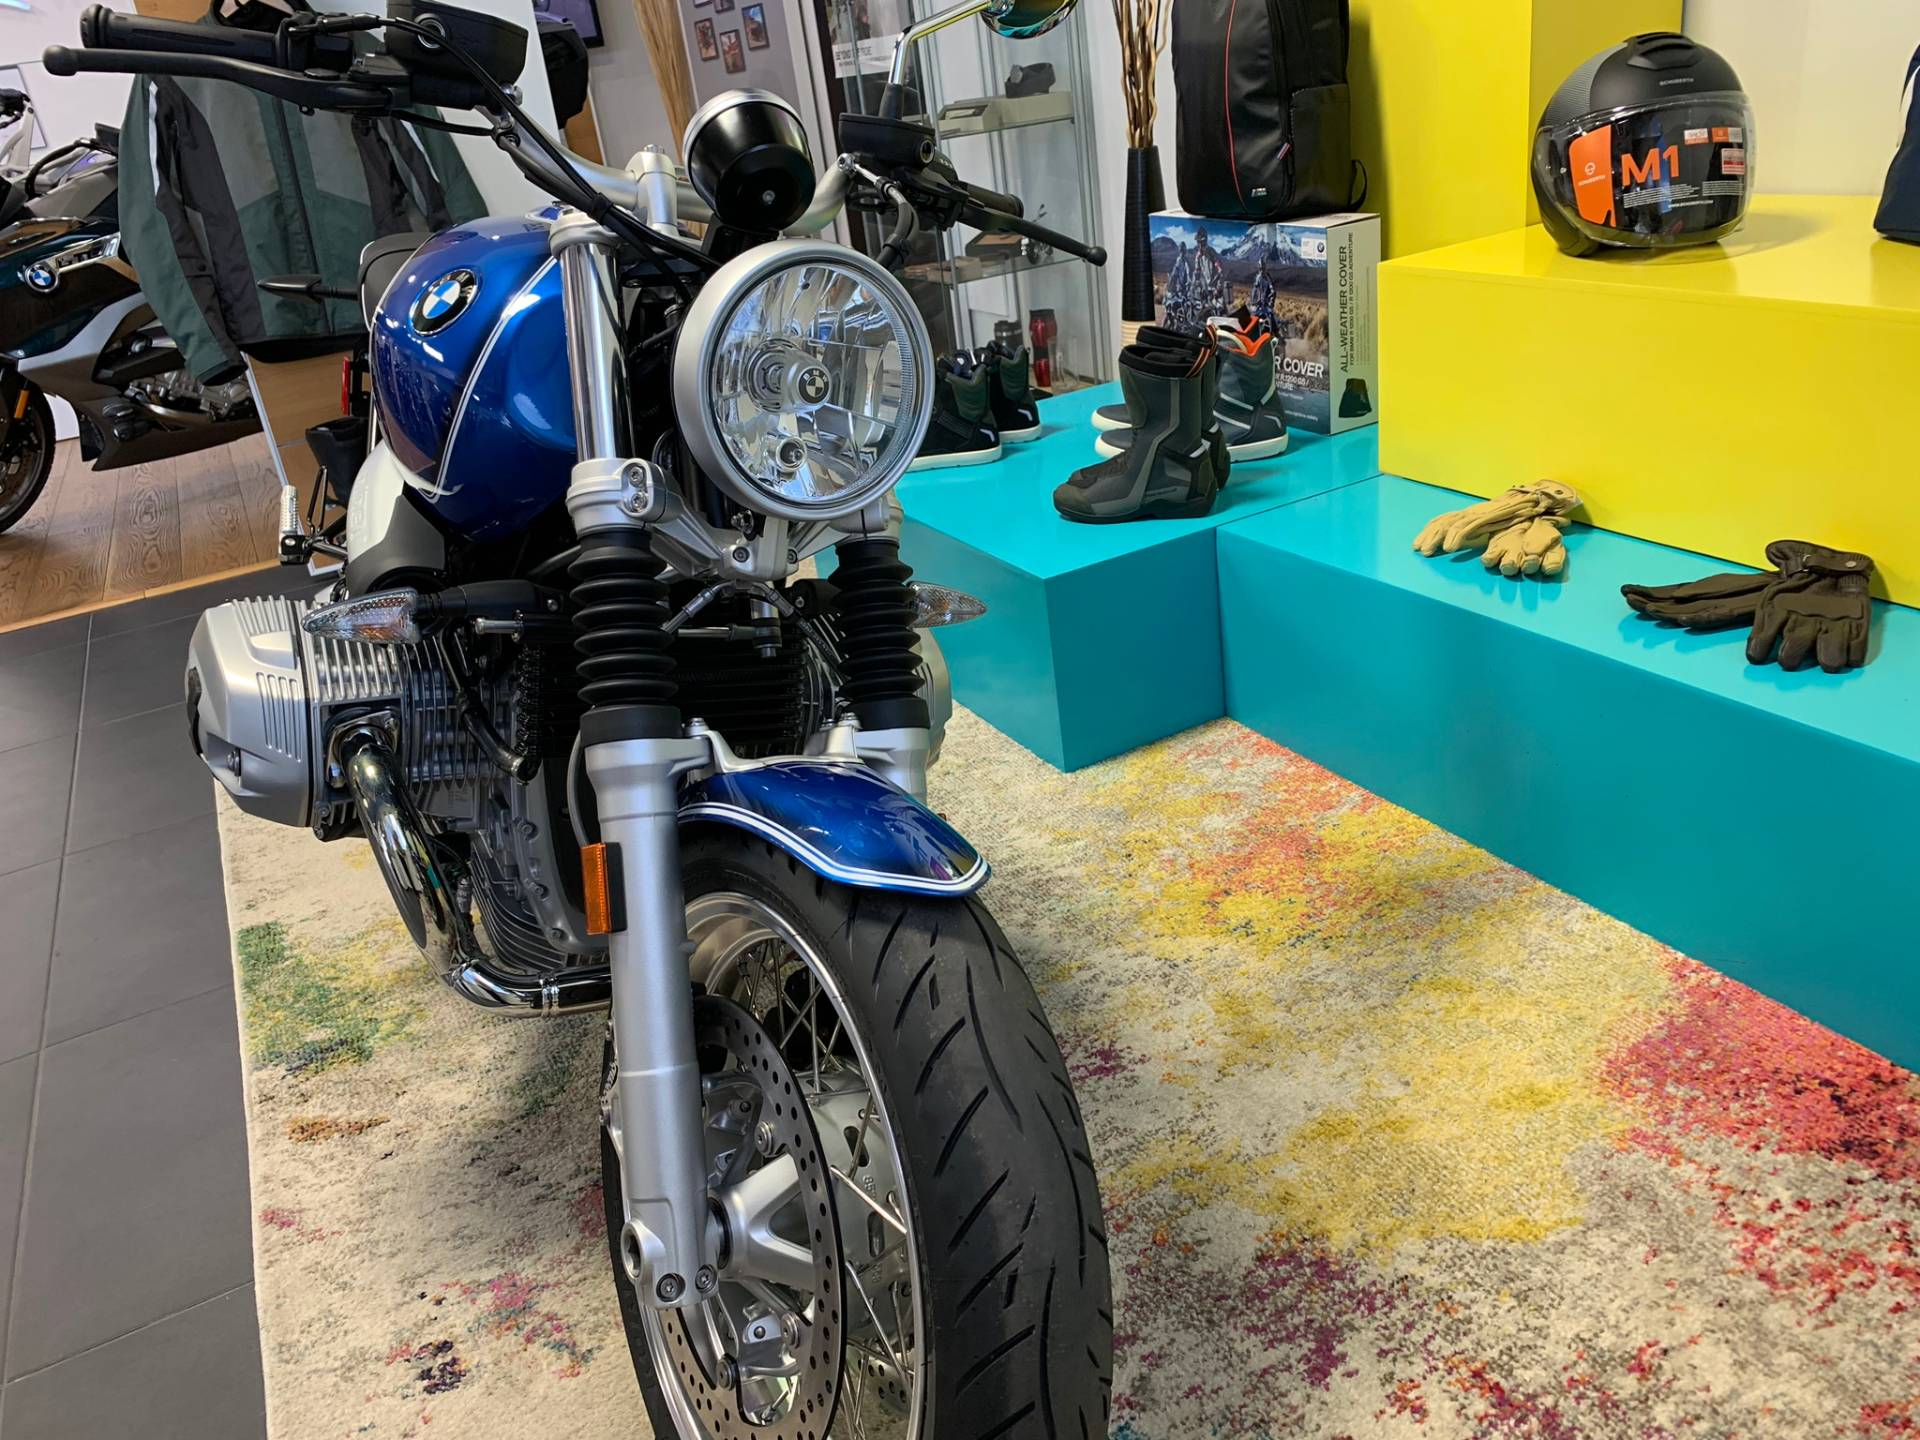 New 2020 2019 BMW R NineT for sale, BMW for sale, BMW Motorcycle Café Racer, new BMW Caffe, Cafe Racer, BMW. BMW Motorcycles of Miami, Motorcycles of Miami, Motorcycles Miami, New Motorcycles, Used Motorcycles, pre-owned. #BMWMotorcyclesOfMiami #MotorcyclesOfMiami. - Photo 2